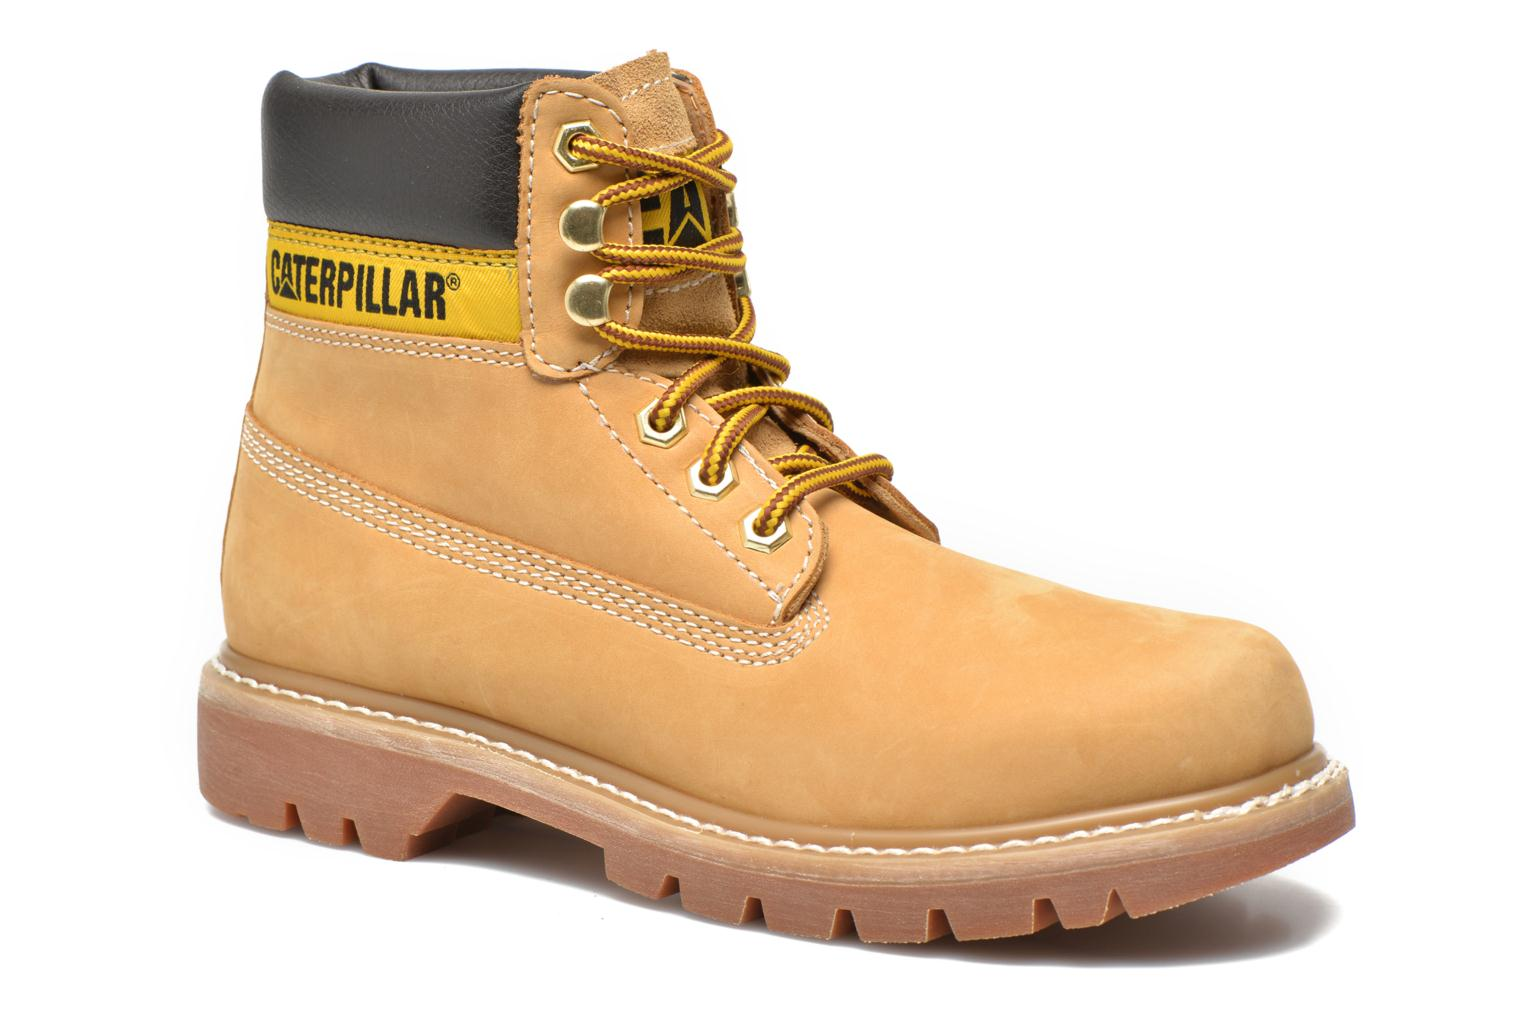 Bottines et boots Caterpillar COLORADO W Beige vue détail/paire